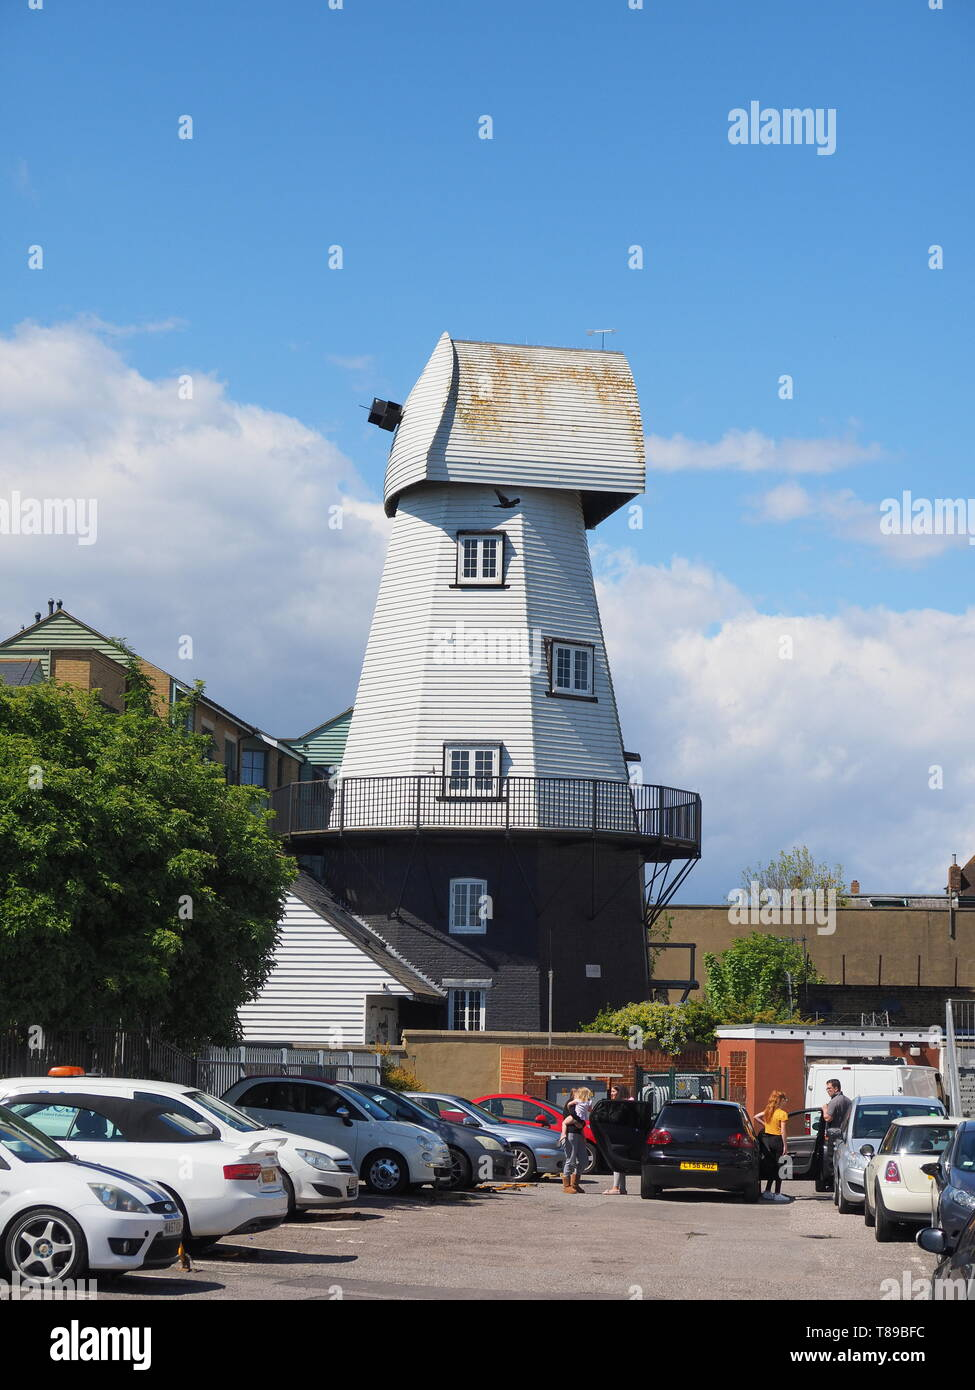 Sheerness, Kent, UK. 12th May, 2019. National Mills Weekend is the annual festival celebrating the UK's milling heritage. Pictured is Watson's Mill (formerly the Great Mill) in Sheerness which lies close to the town centre. Since 1924 the mill stood in ruin after being demolished, until being rebuilt by Caleb Watson in 2006, with fire almost destroying the rebuild in 2008 before it was due to be finished. It's a prominent local landmark but not open to the public; the ground floor has been taken over by a local insurance company. It's a Grade II  smock mill. Credit: James Bell/Alamy Live News - Stock Image